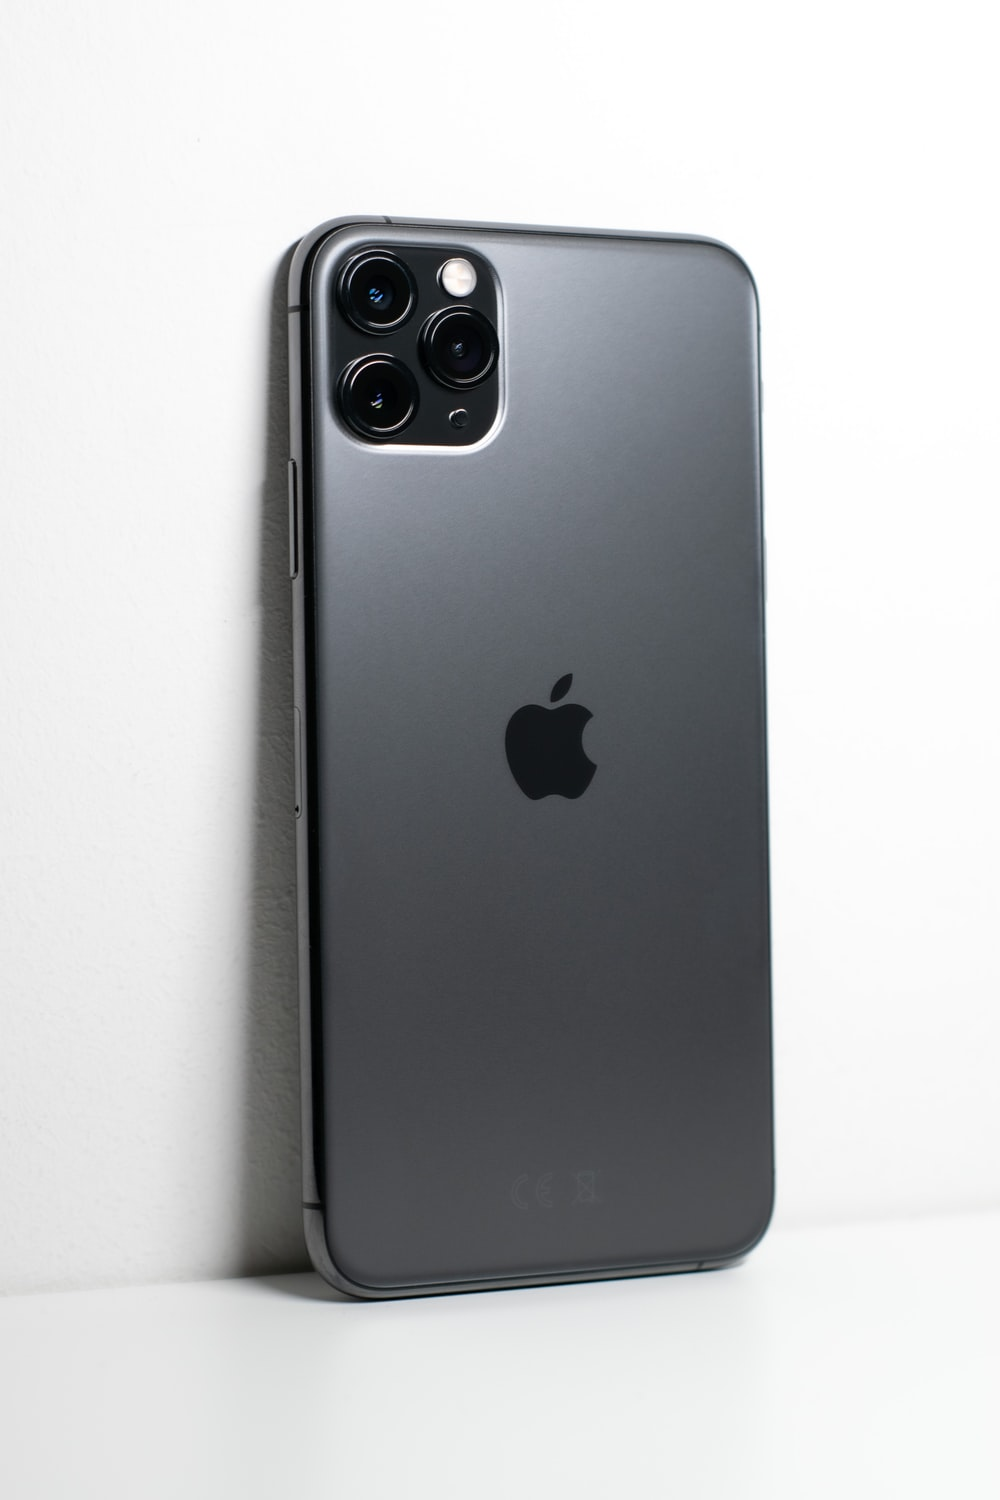 black iphone 7 plus on white surface